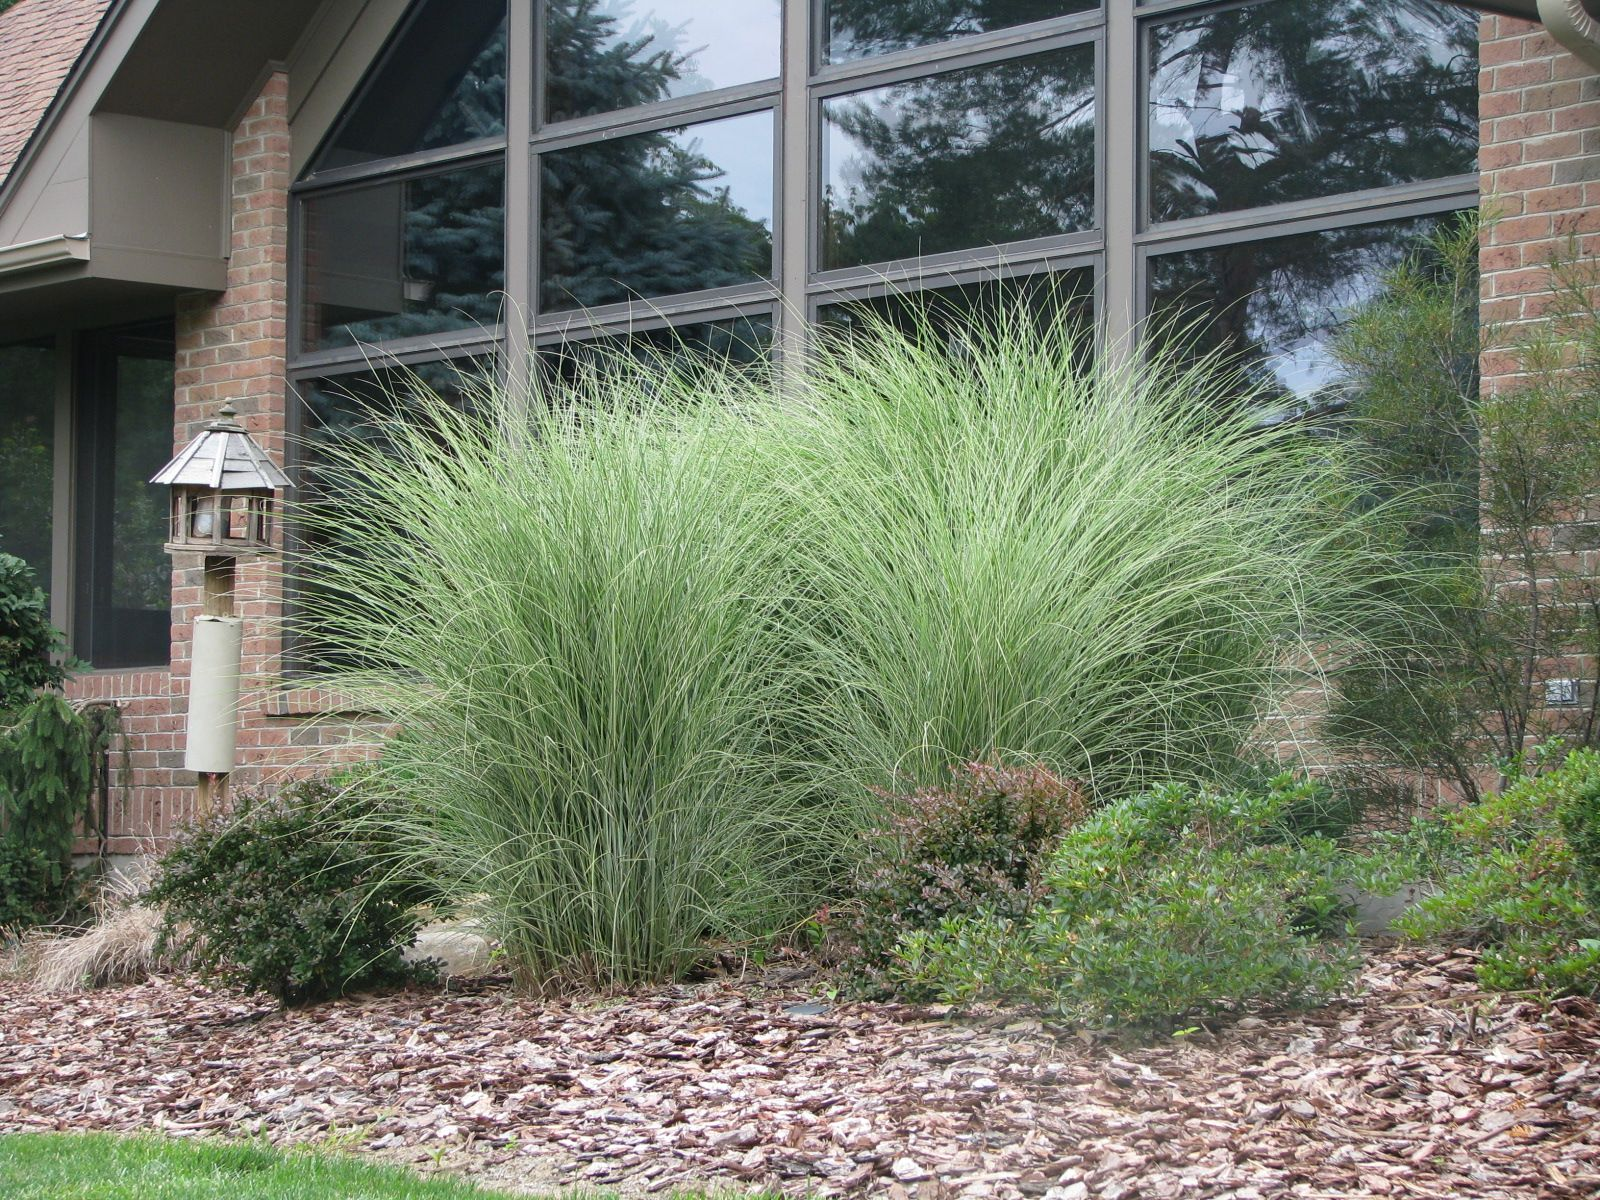 Grass random ornamental grass photos the alternative for Ornamental grasses that grow tall